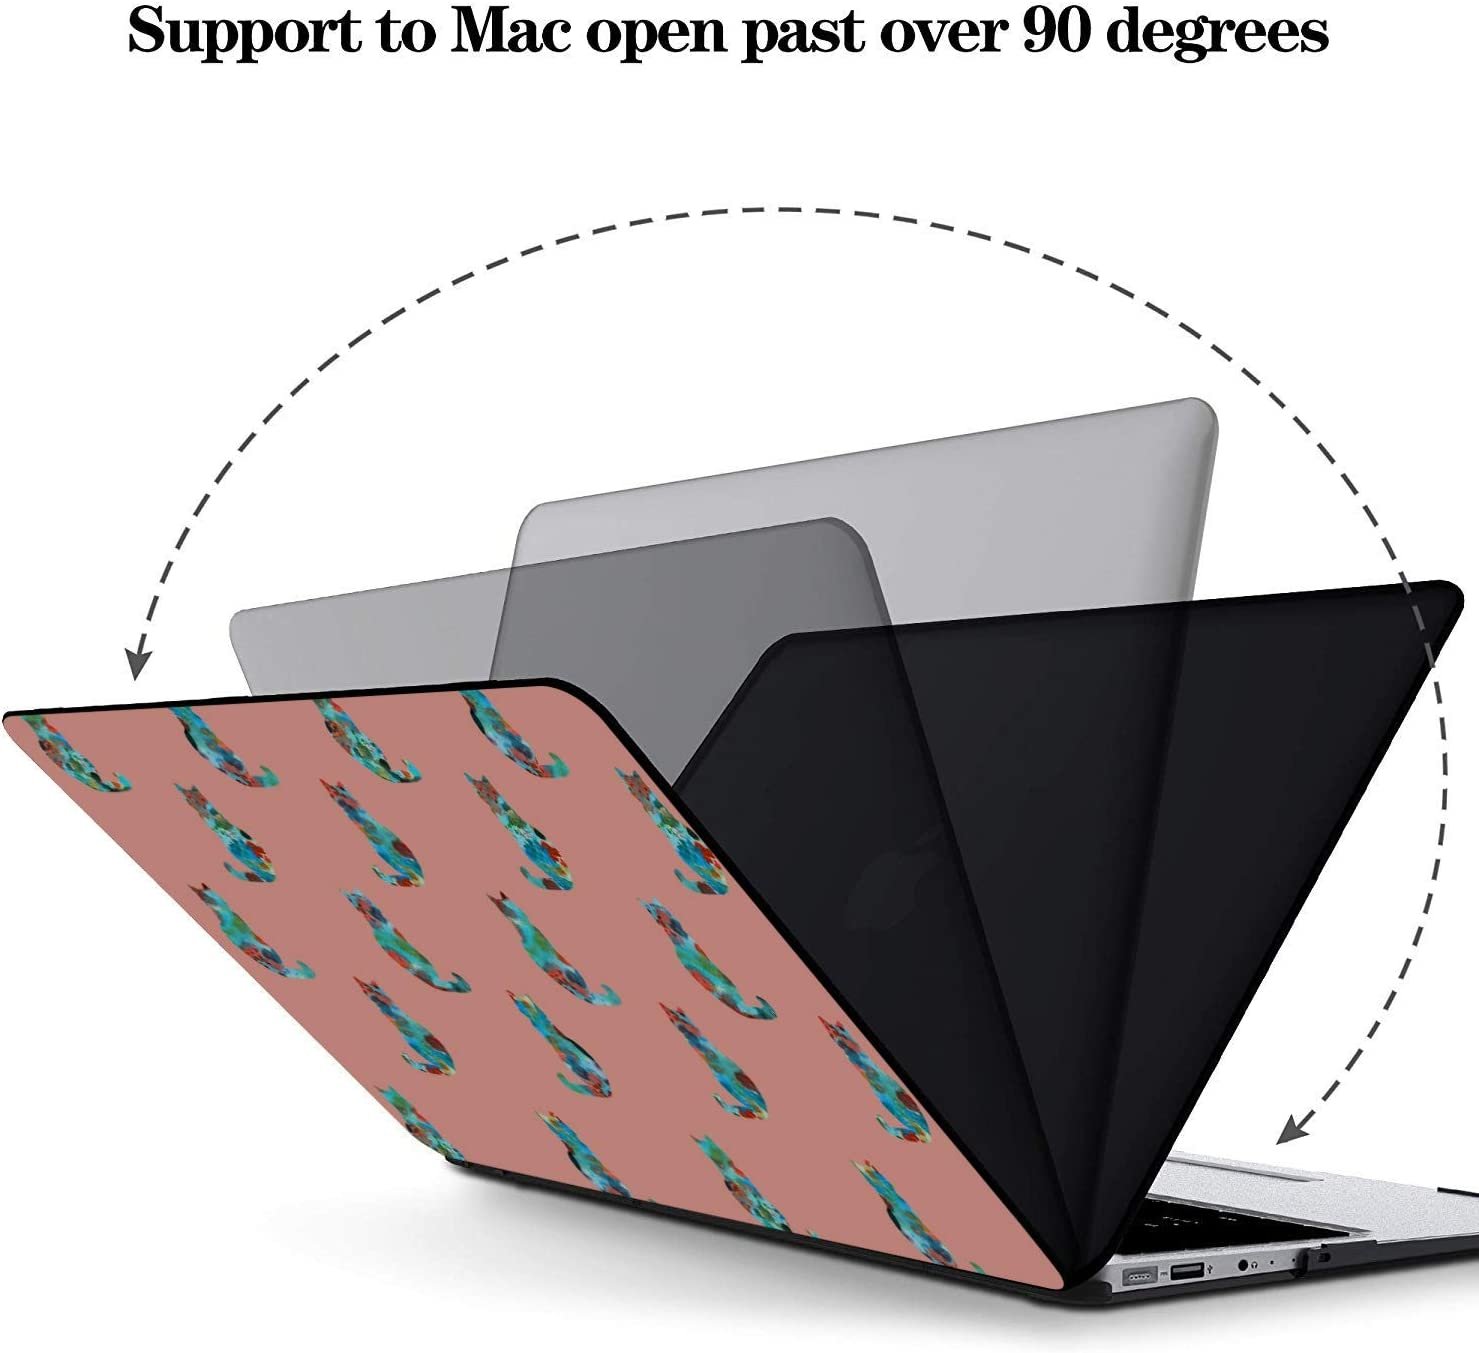 15 Inch Laptop Case Smart Warm Heart Gift Animal Pet Cat Plastic Hard Shell Compatible Mac Air 11 Pro 13 15 MacBook Pro 15 Accessories Protection for MacBook 2016-2019 Version